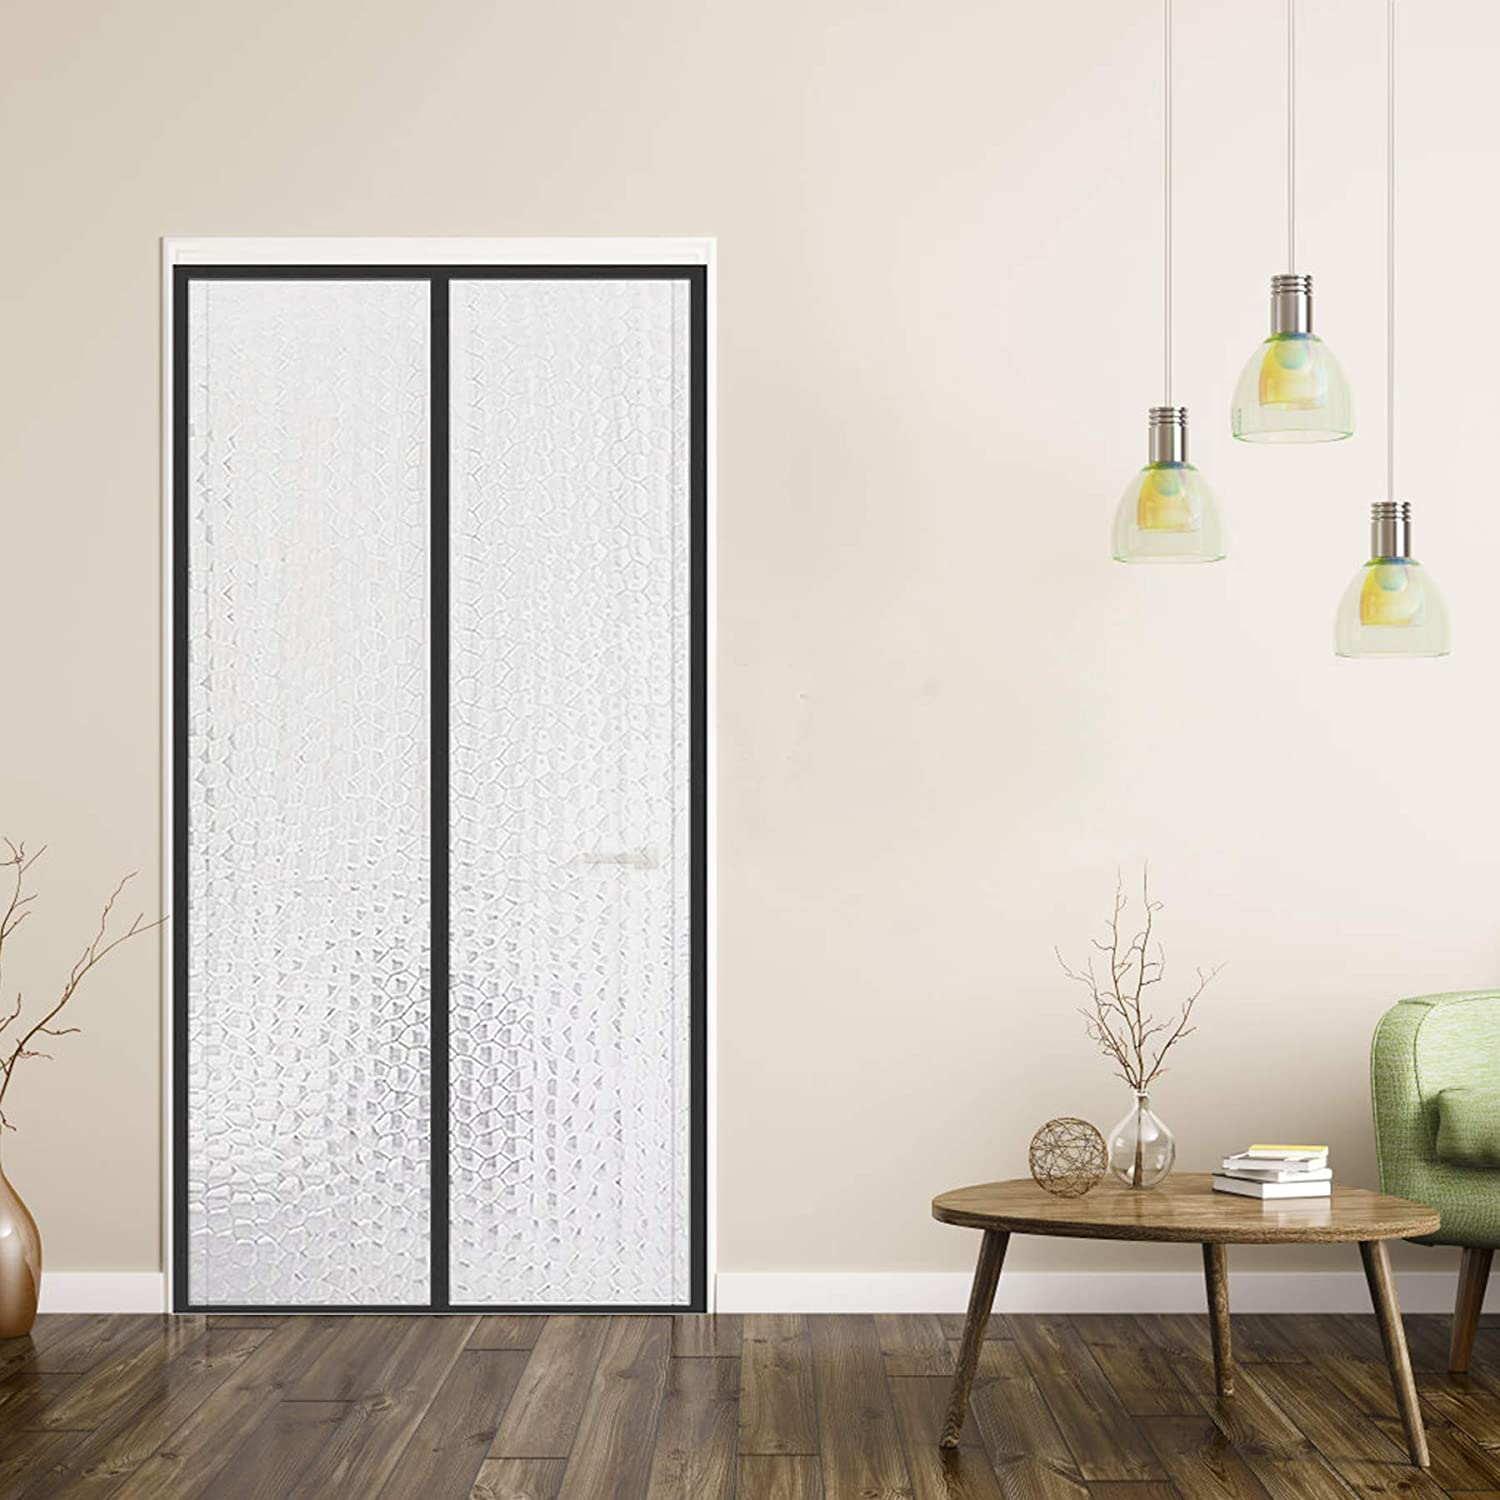 """YUFER Magnetic Thermal Insulated Curtain 32×80,EVA Thermal Door Cover - Thermal Screen Door for Air Conditioner Heater Room Home Kitchen Fits Doors Up to 32"""" x 80"""" MAX"""